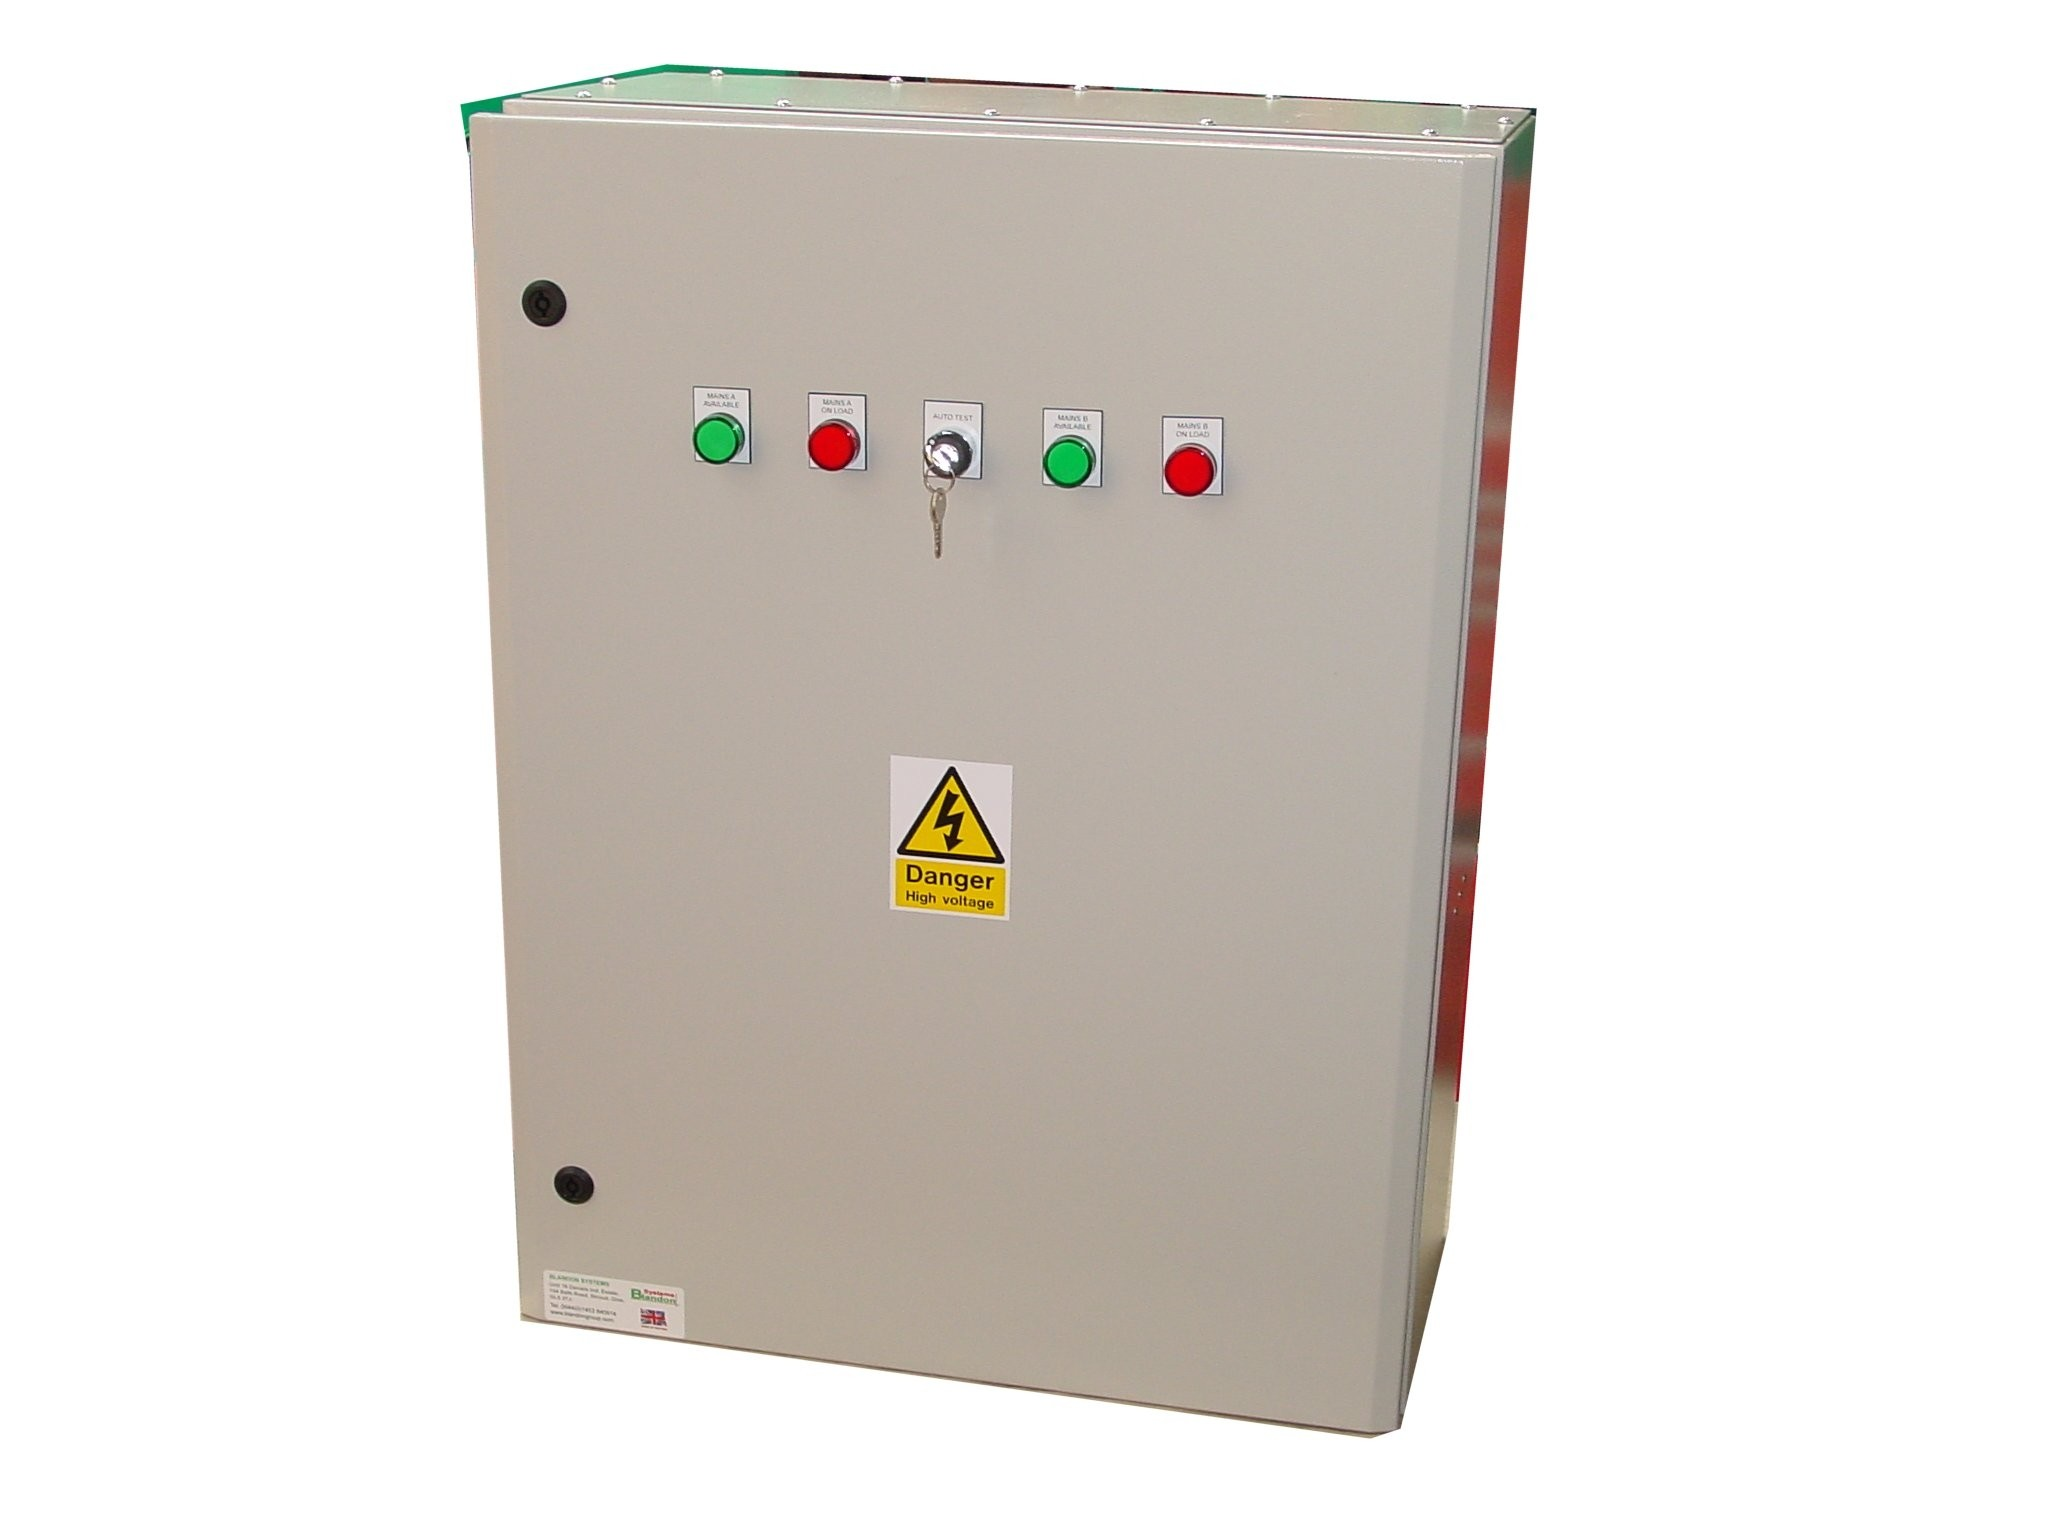 200A ATS 3 Phase Mains-Mains 400V, UVR Controlled, ABB Contactors